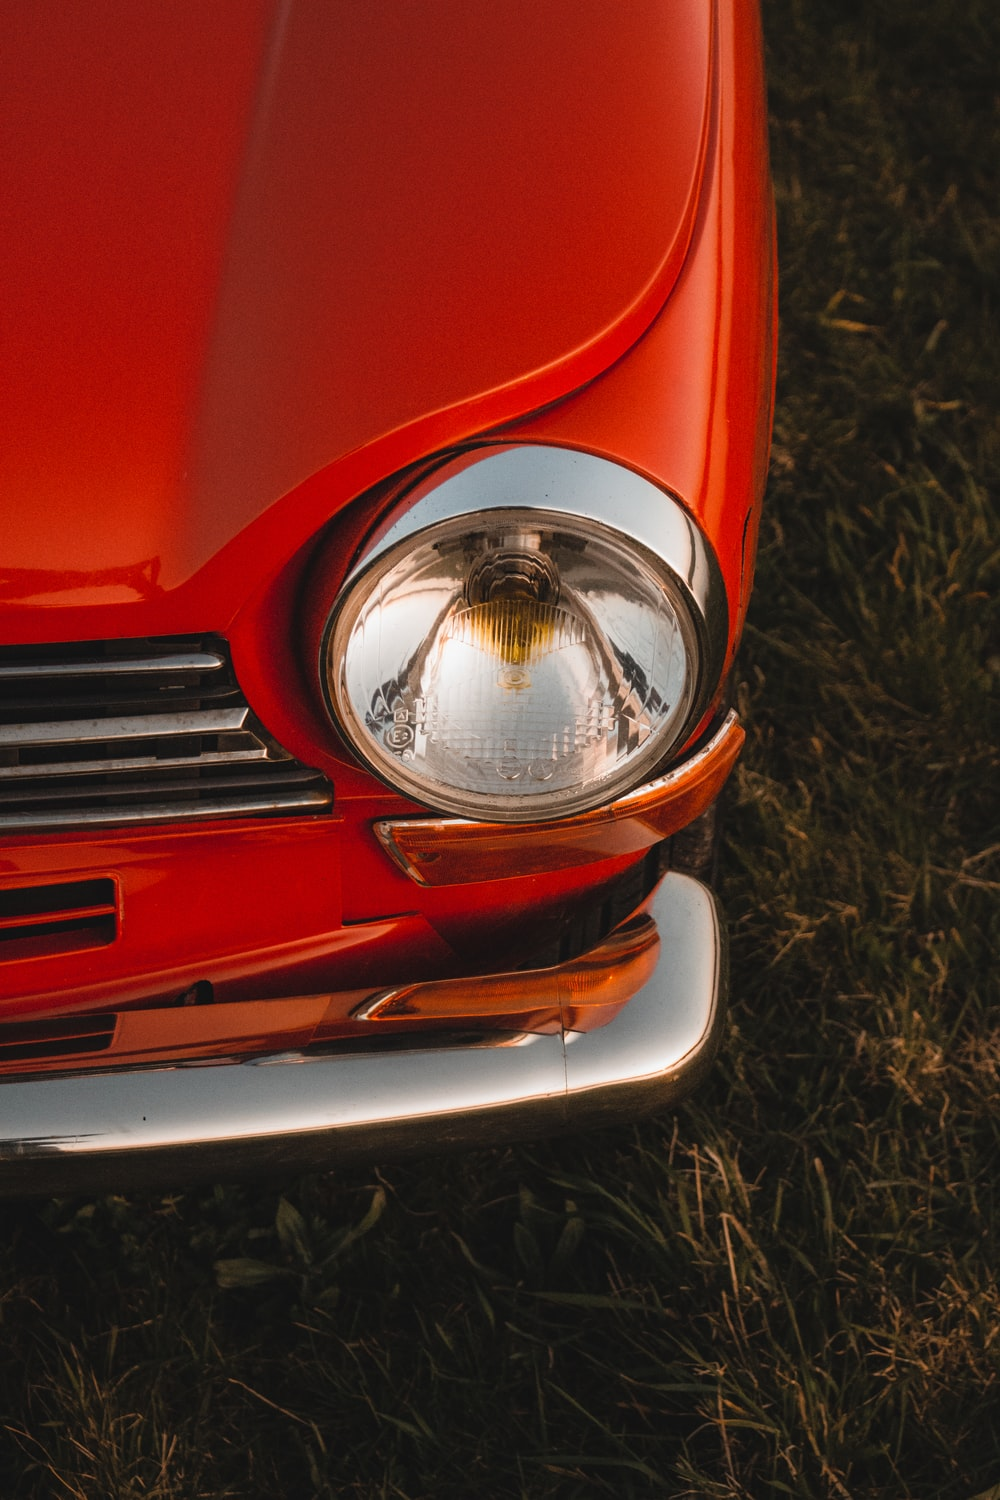 red car on brown grass